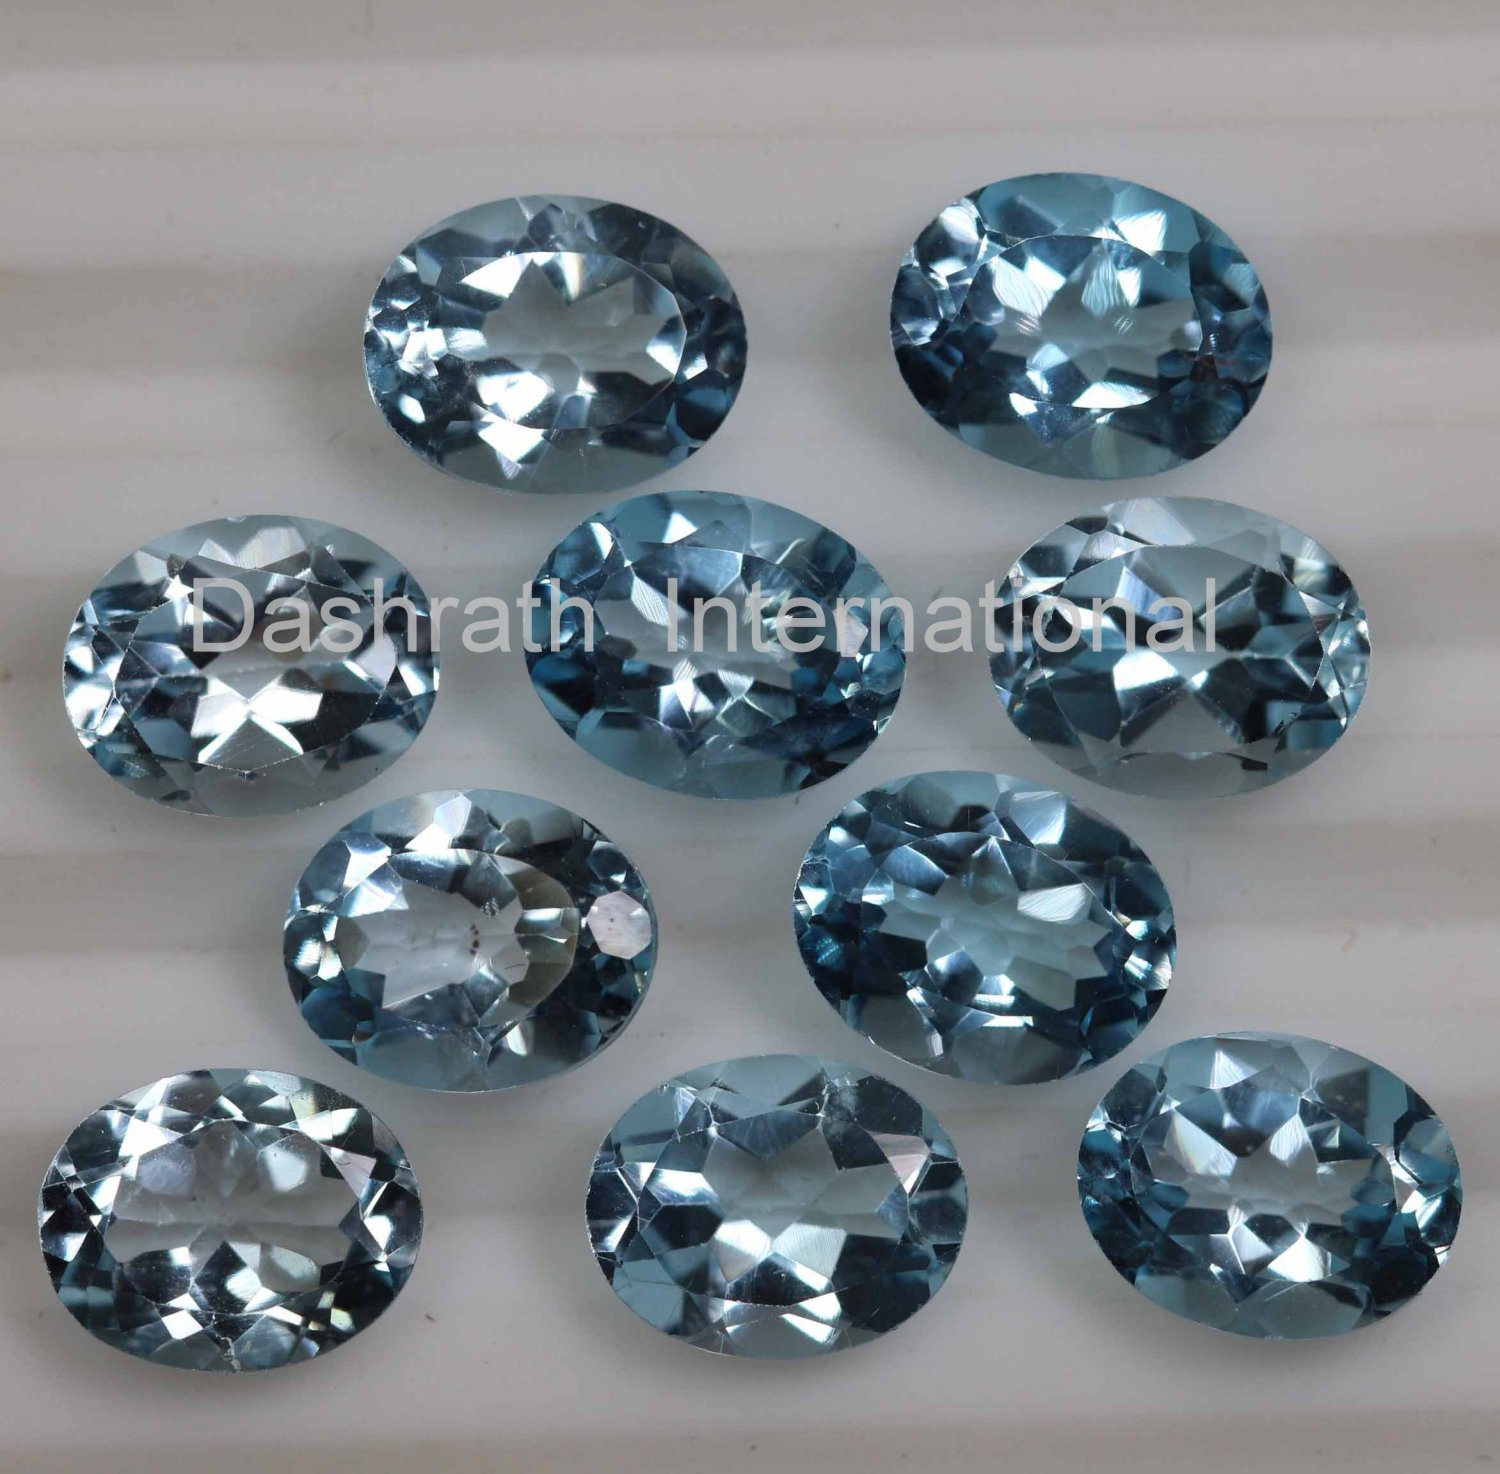 7x5mm Natural Sky Blue Topaz Faceted Cut Oval  25 Pieces Lot  Top Quality Loose Gemstone